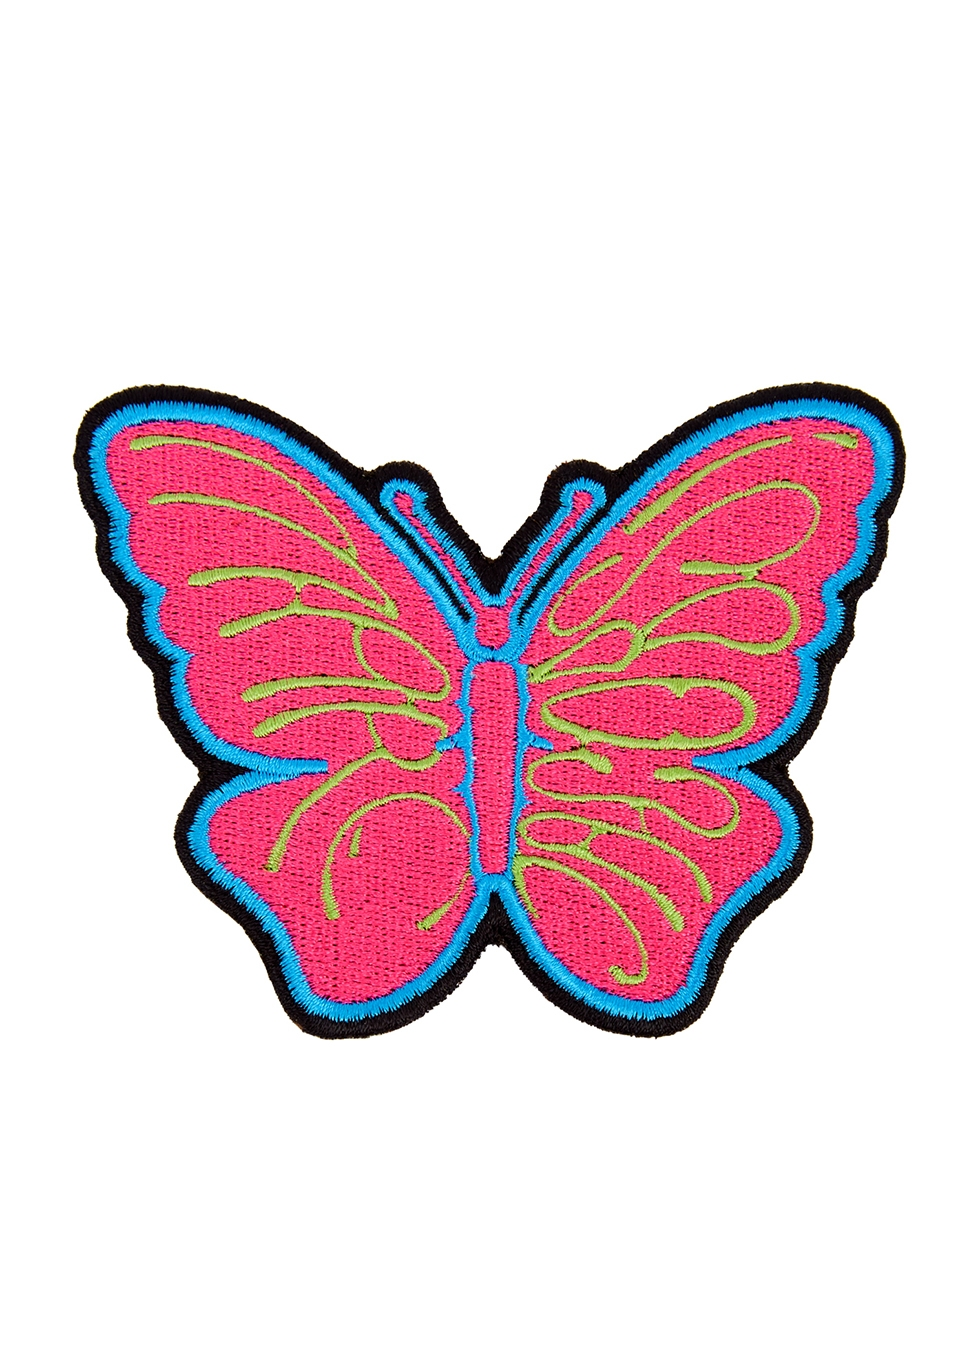 The Butterfly embroidered patch